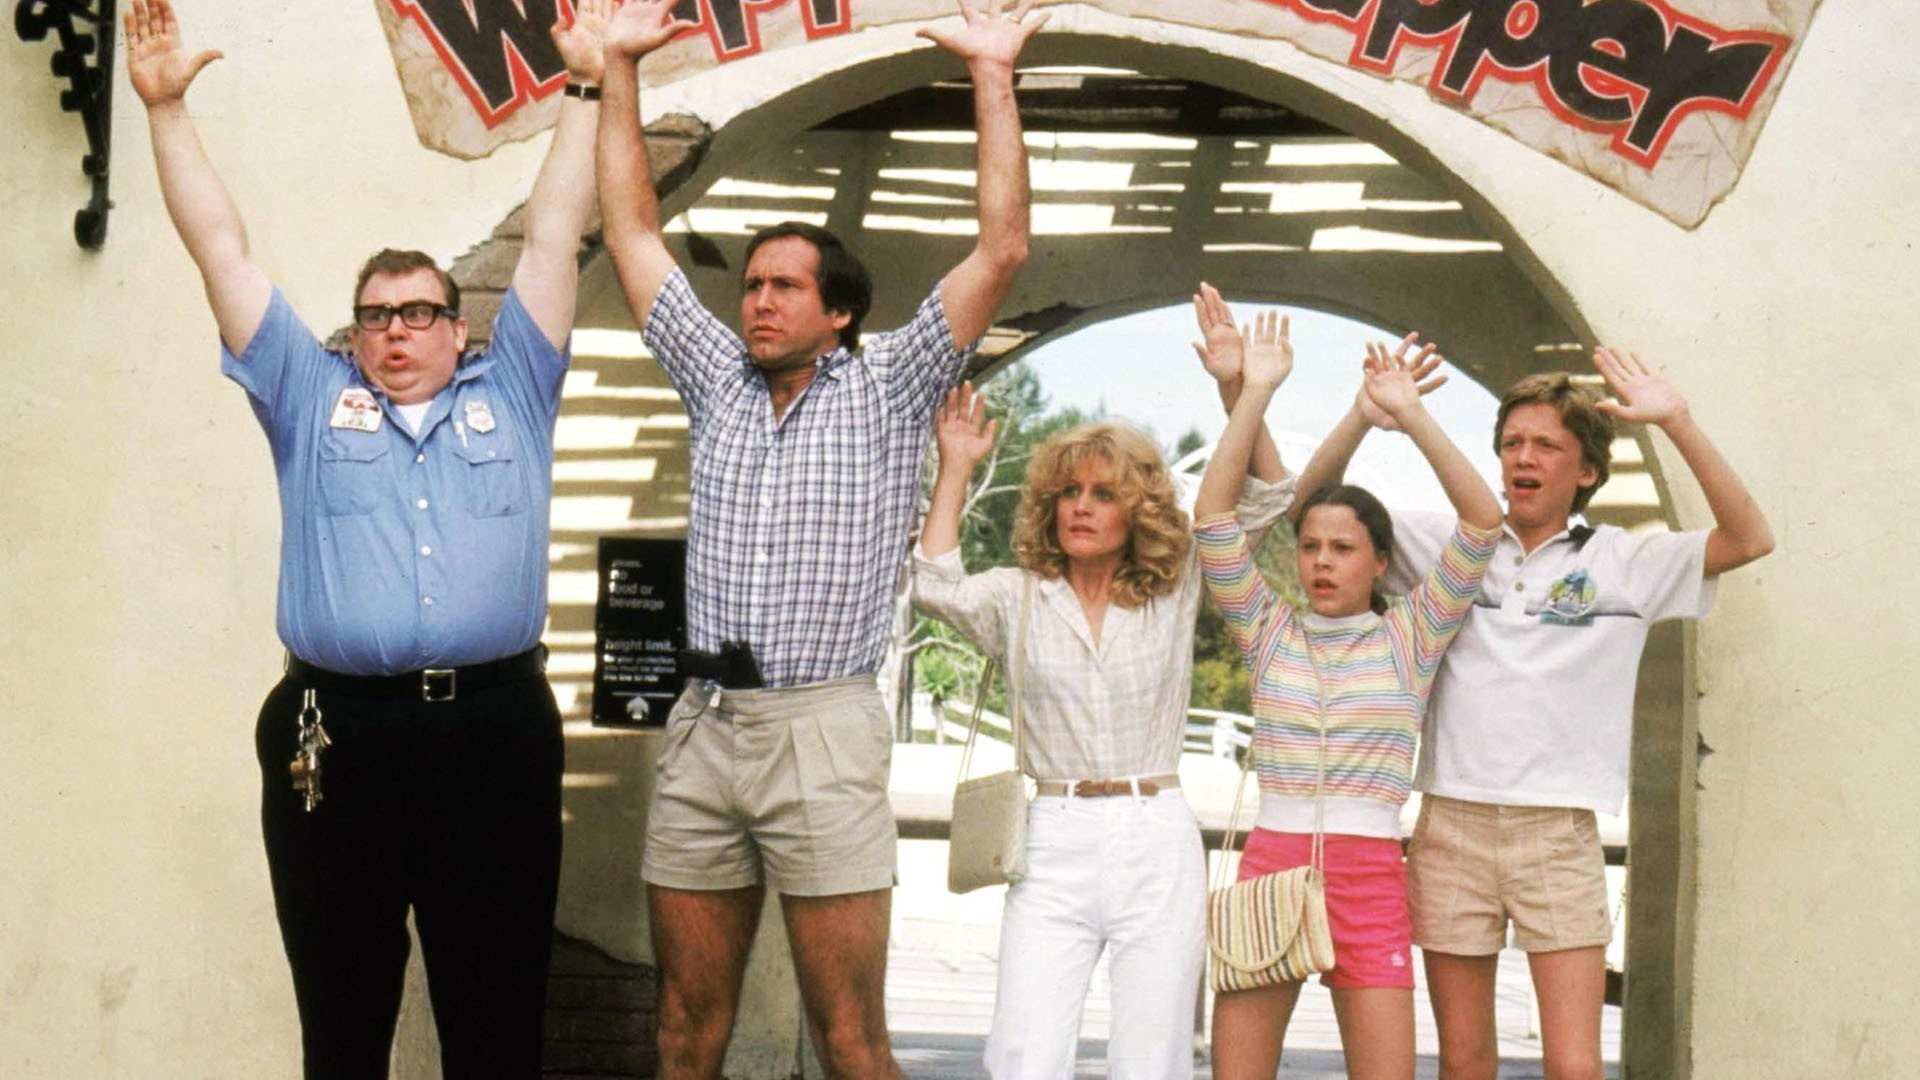 305 best V-A-C-A-T-I-O-N images on Pinterest | Chevy chase, National  lampoons vacation and National lampoons